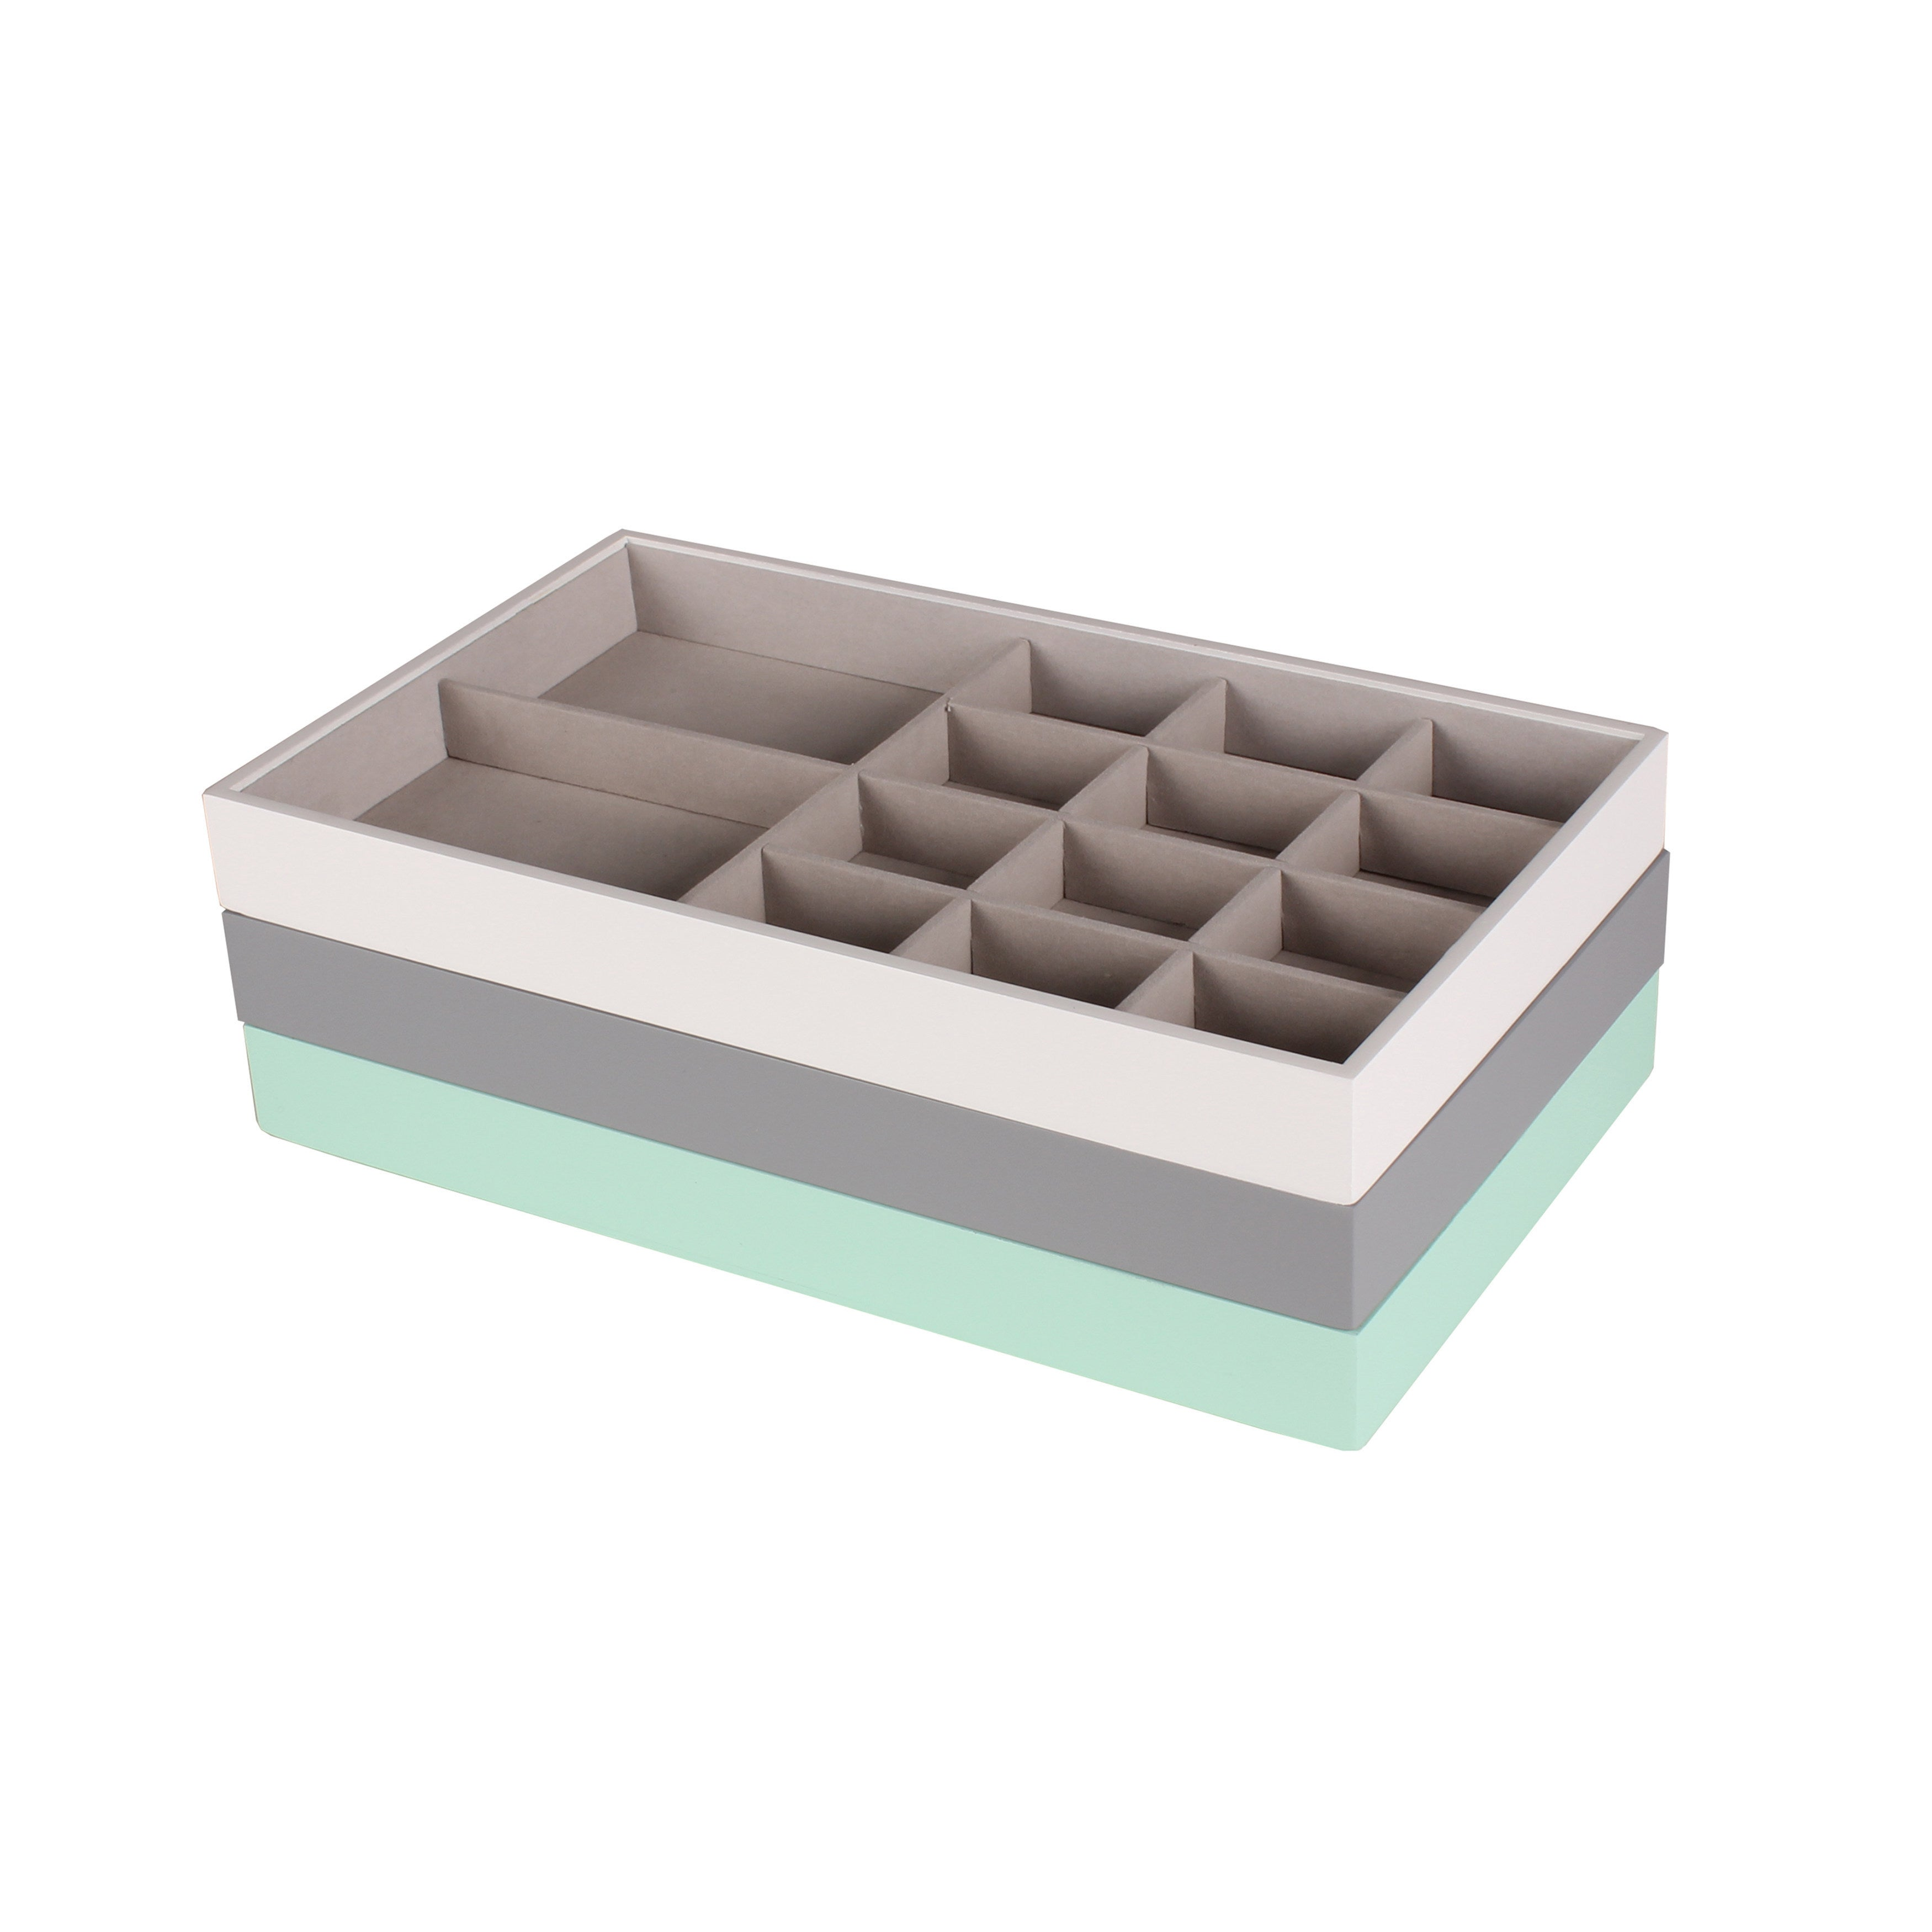 Charmant Shop Kate And Laurel Myrcella Multicolored Jewelry Storage Stackable Trays  (Pack Of 3)   Free Shipping Today   Overstock.com   14389824